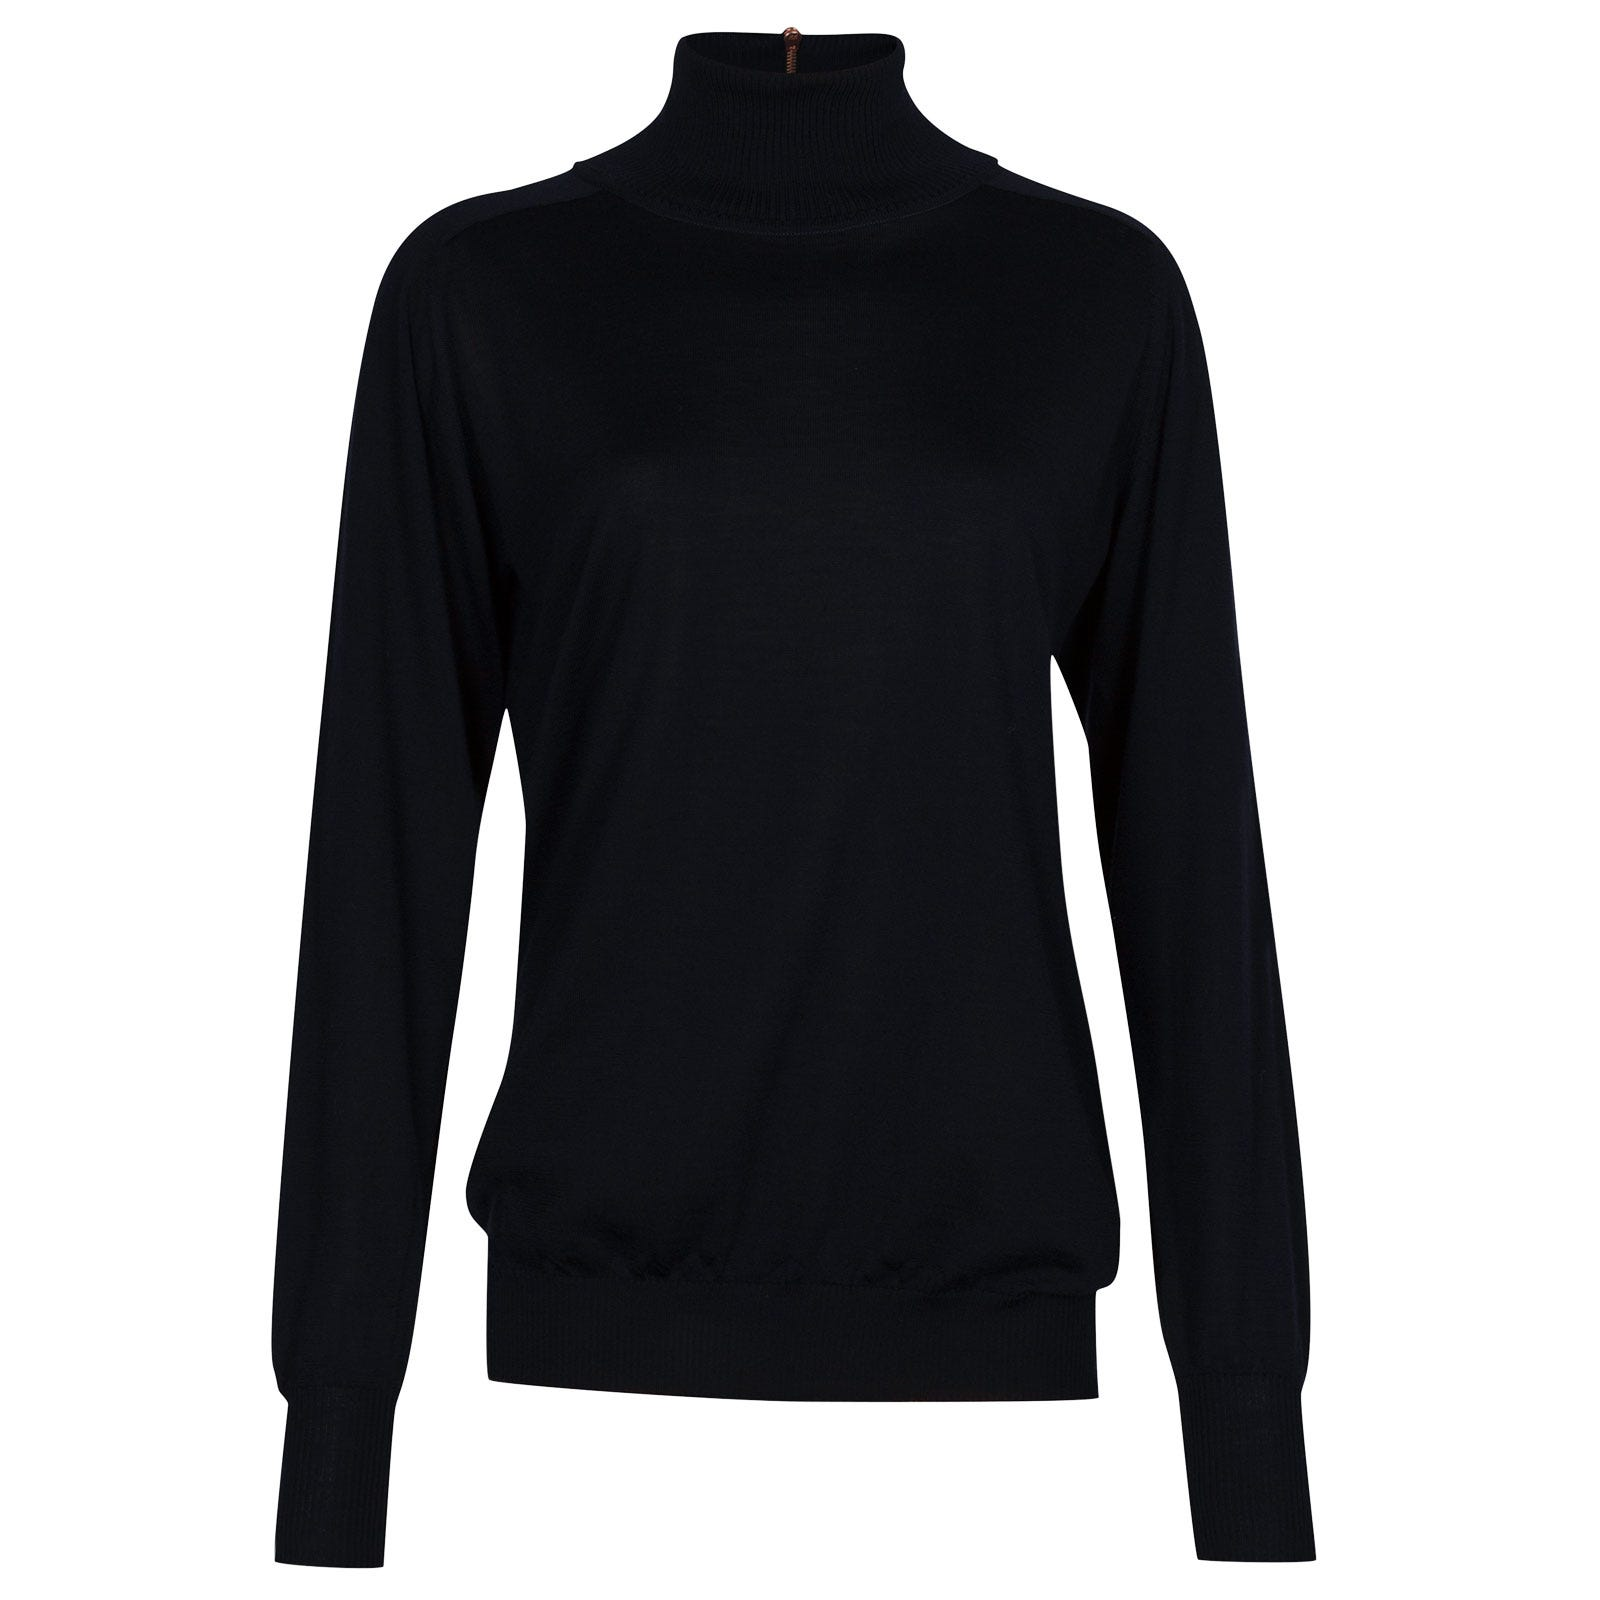 John Smedley woolf Merino Wool & Cashmere Sweater in midnight-L